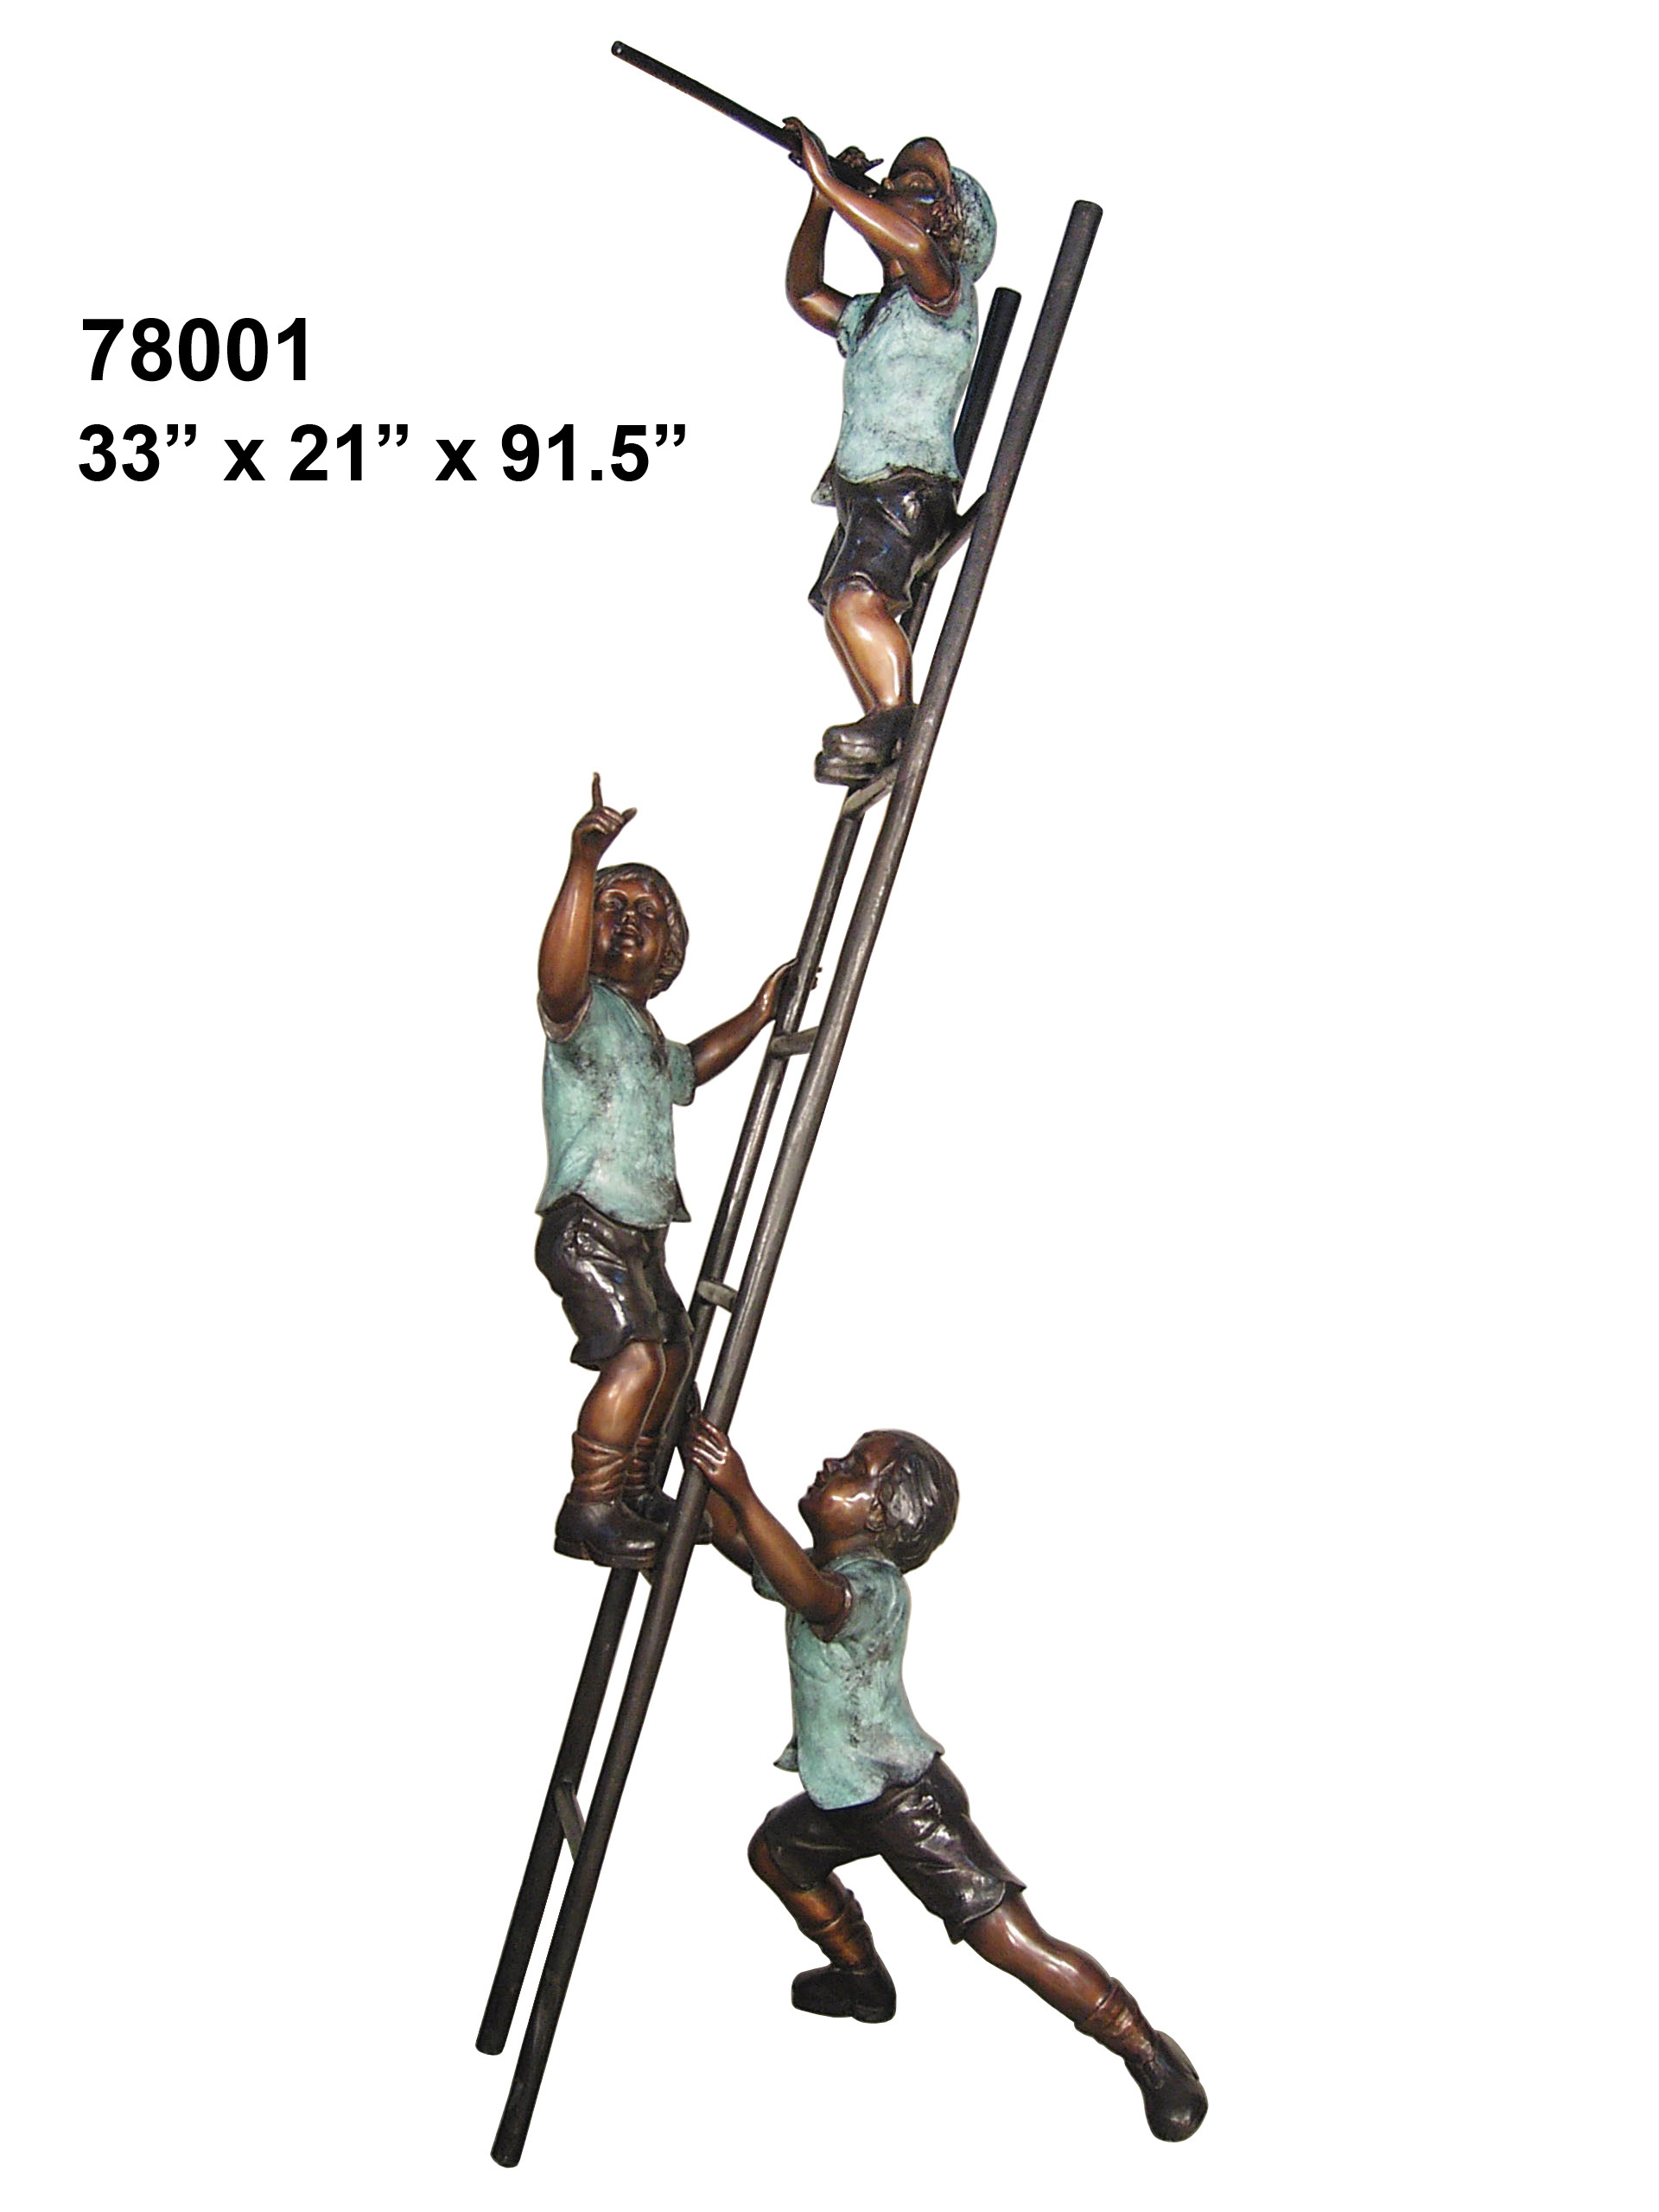 Three Kids on a Ladder